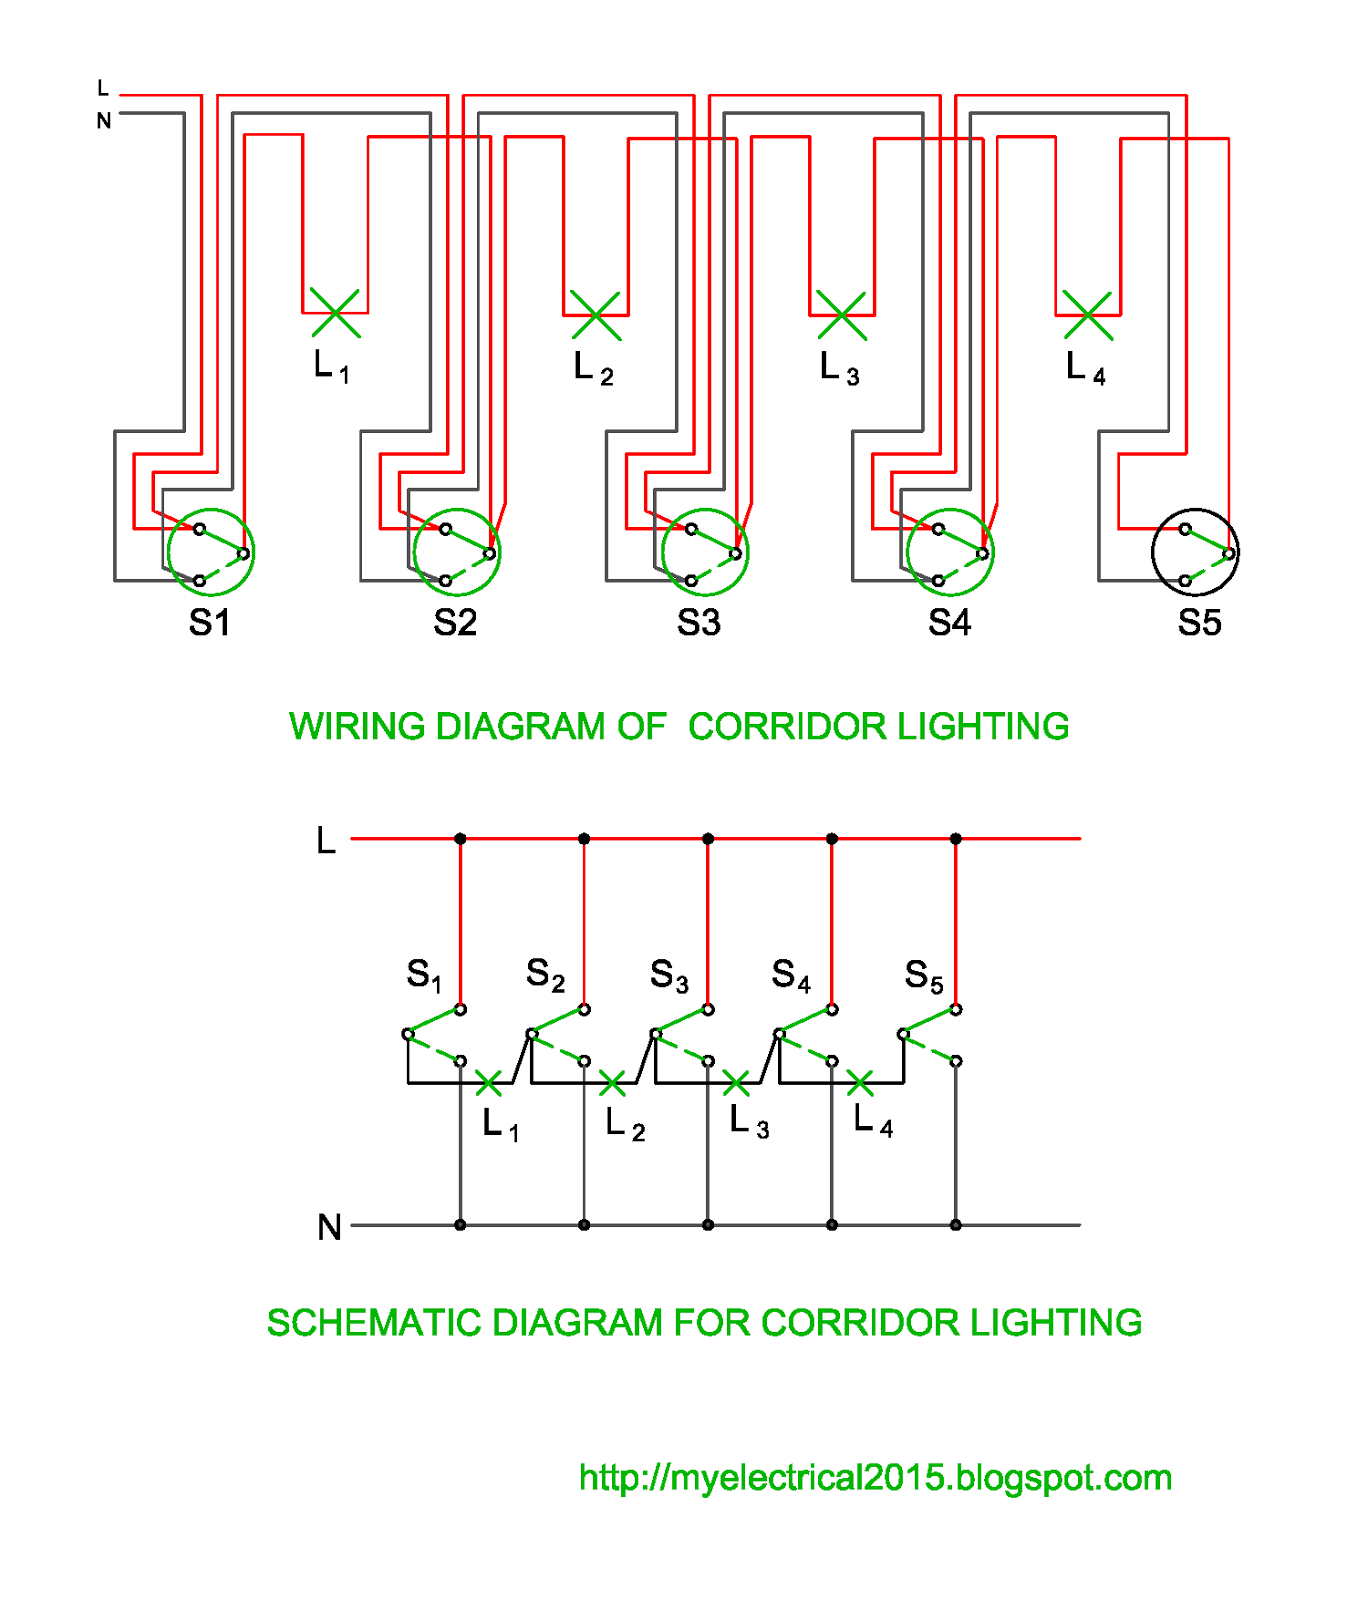 small resolution of wiring and schematic diagram of corridor lighting electrical corridor light wiring diagram